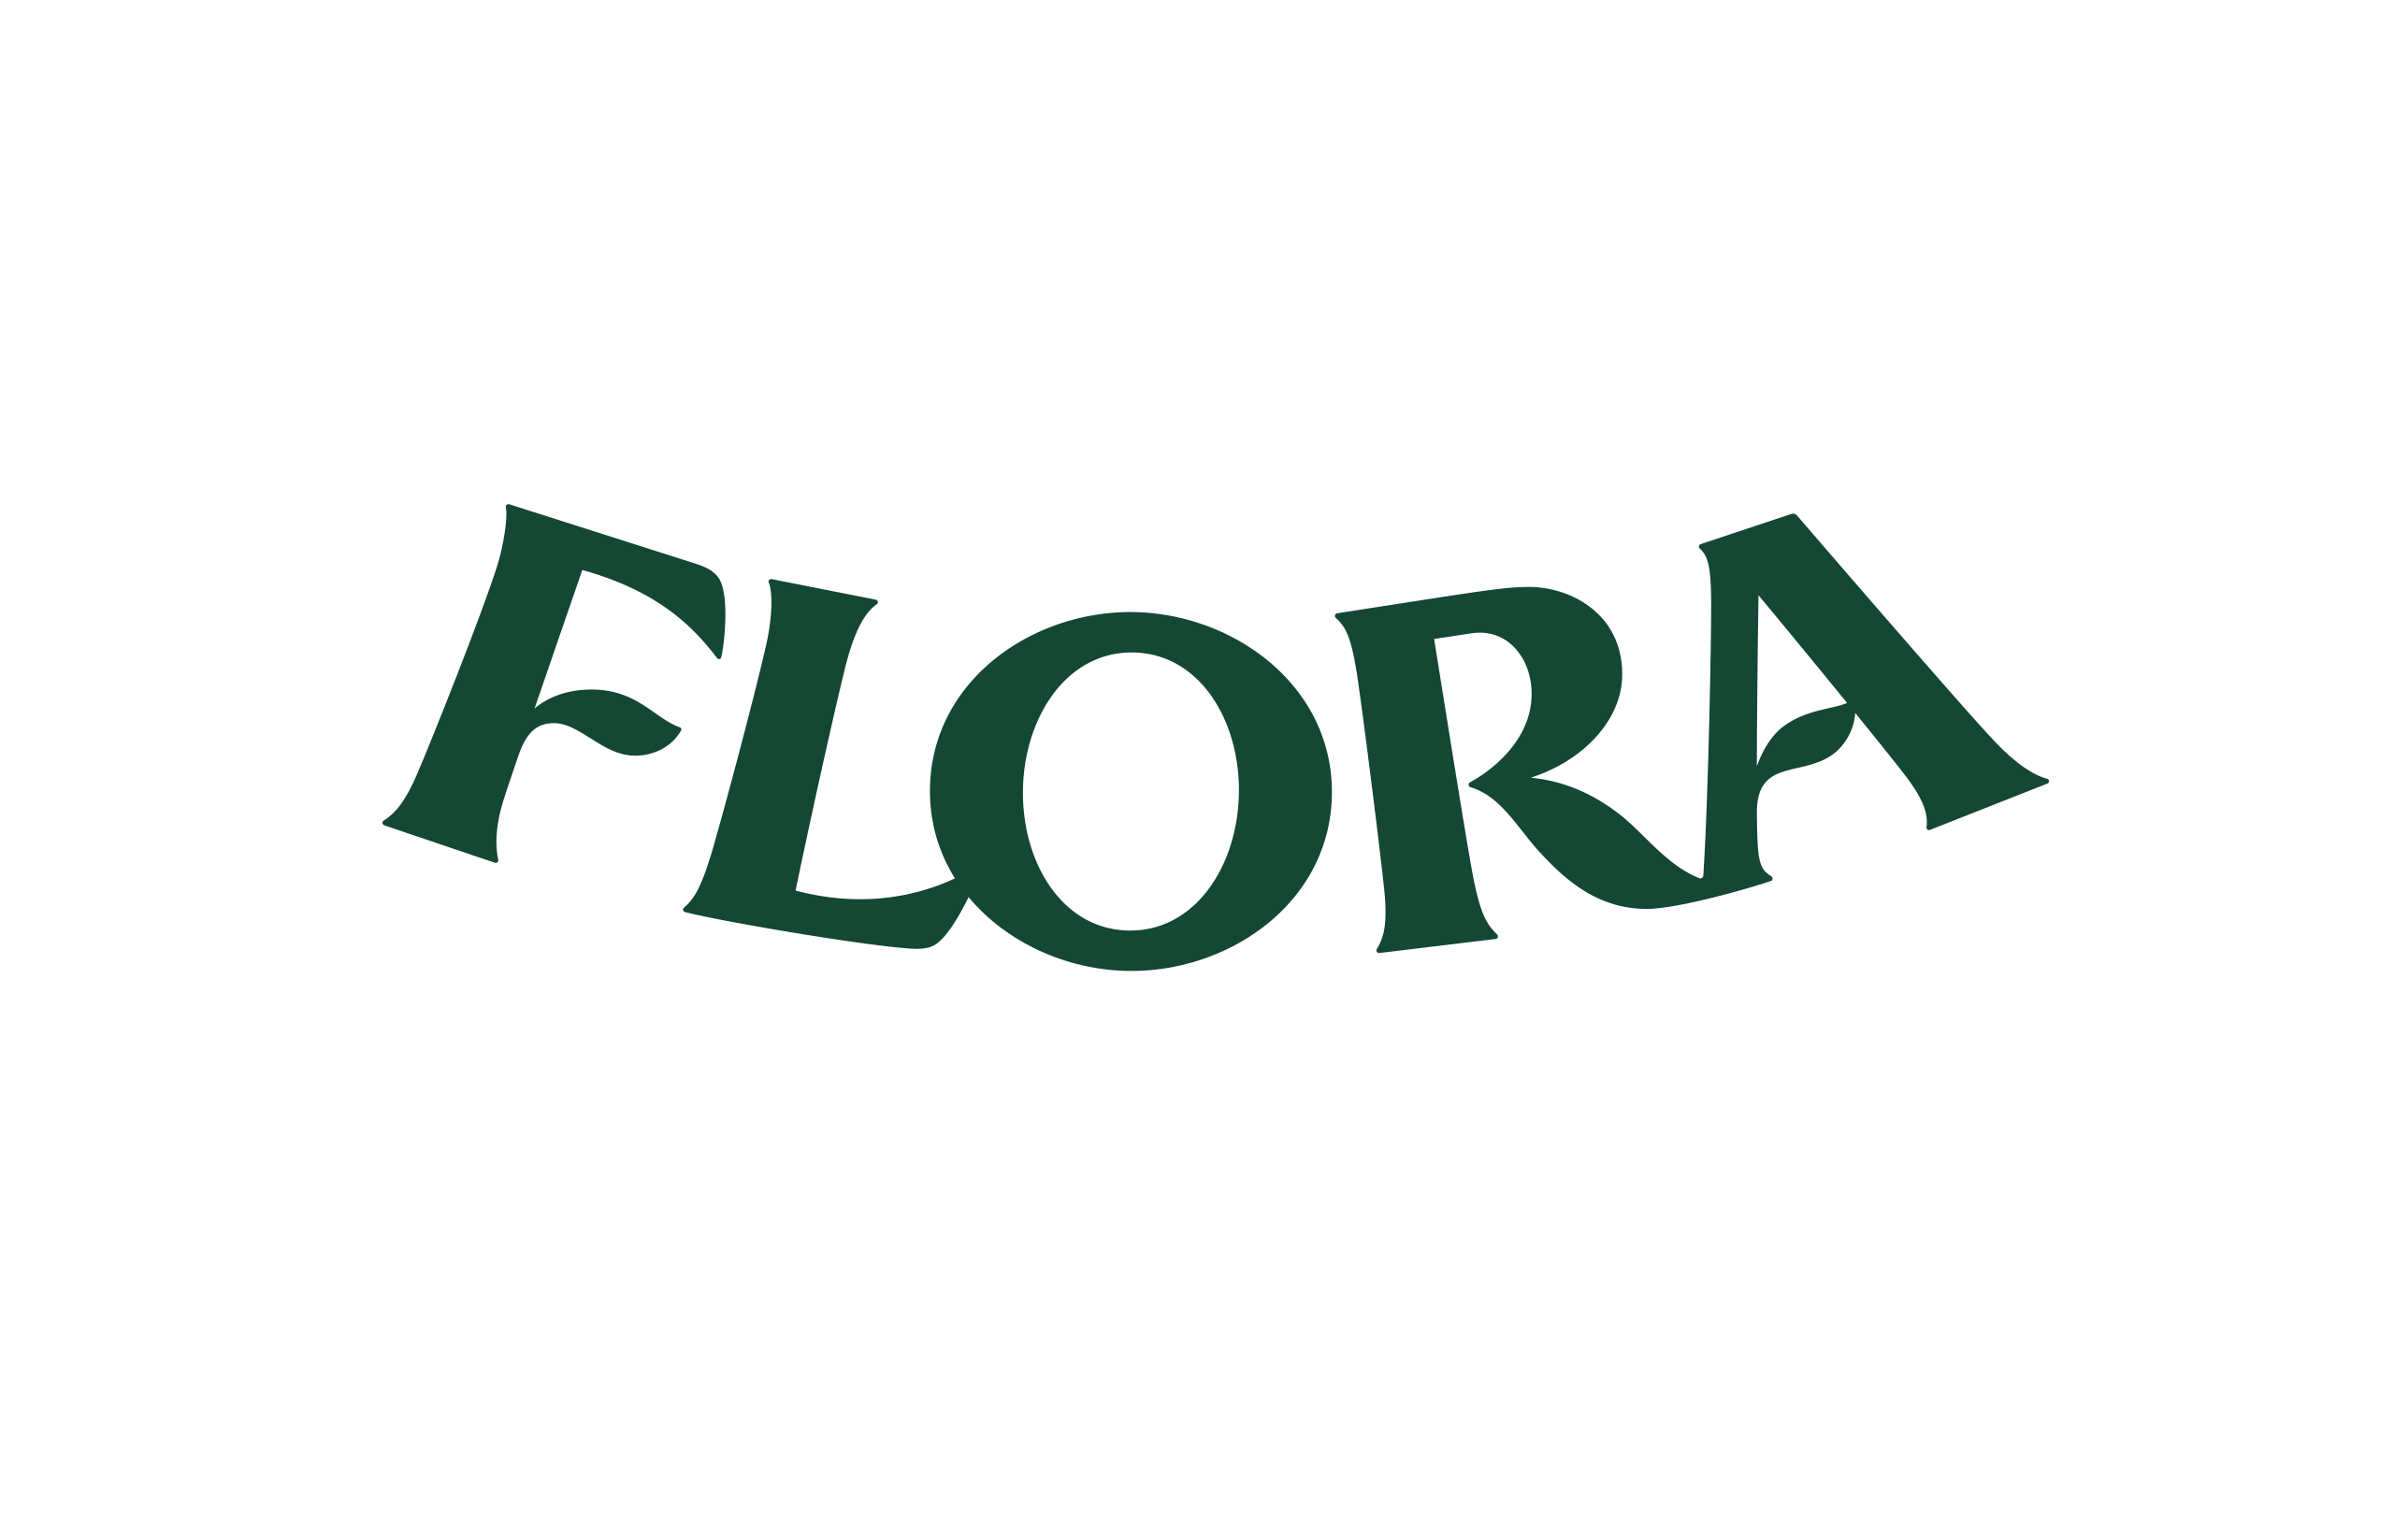 Flora logotype designed by Dan Forster